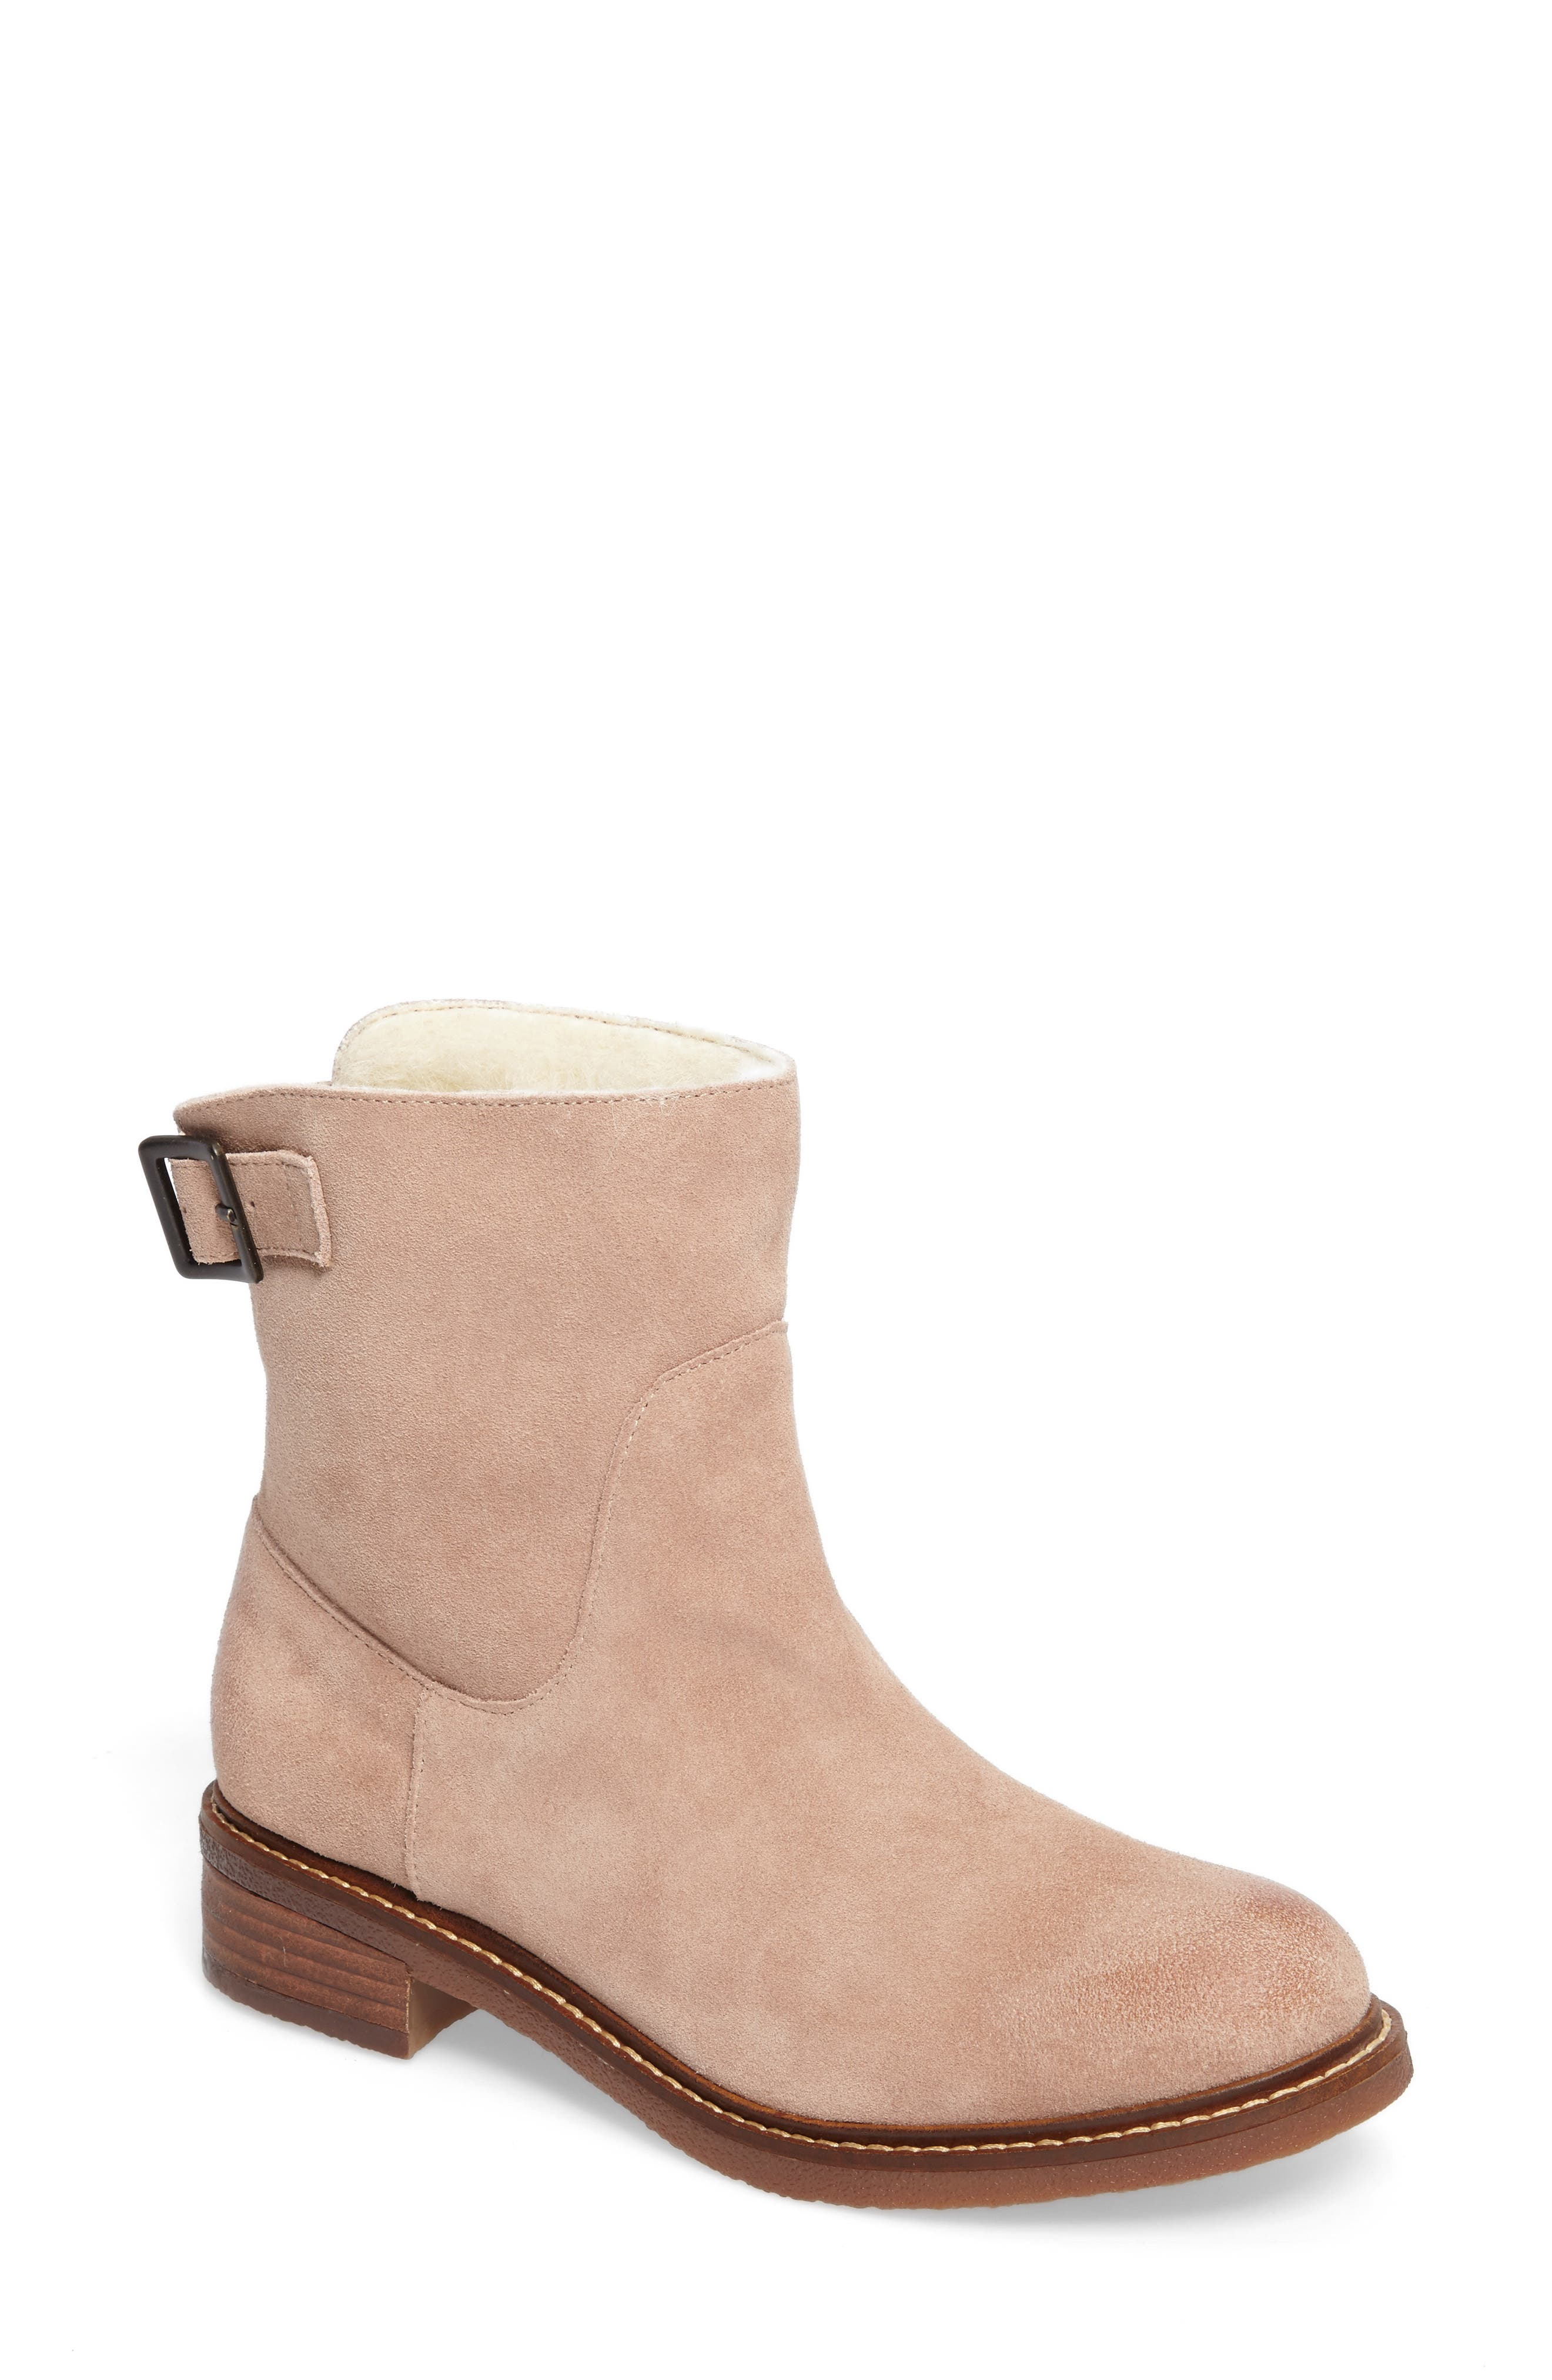 Kelsi Dagger Brooklyn Clay Bootie (Women)